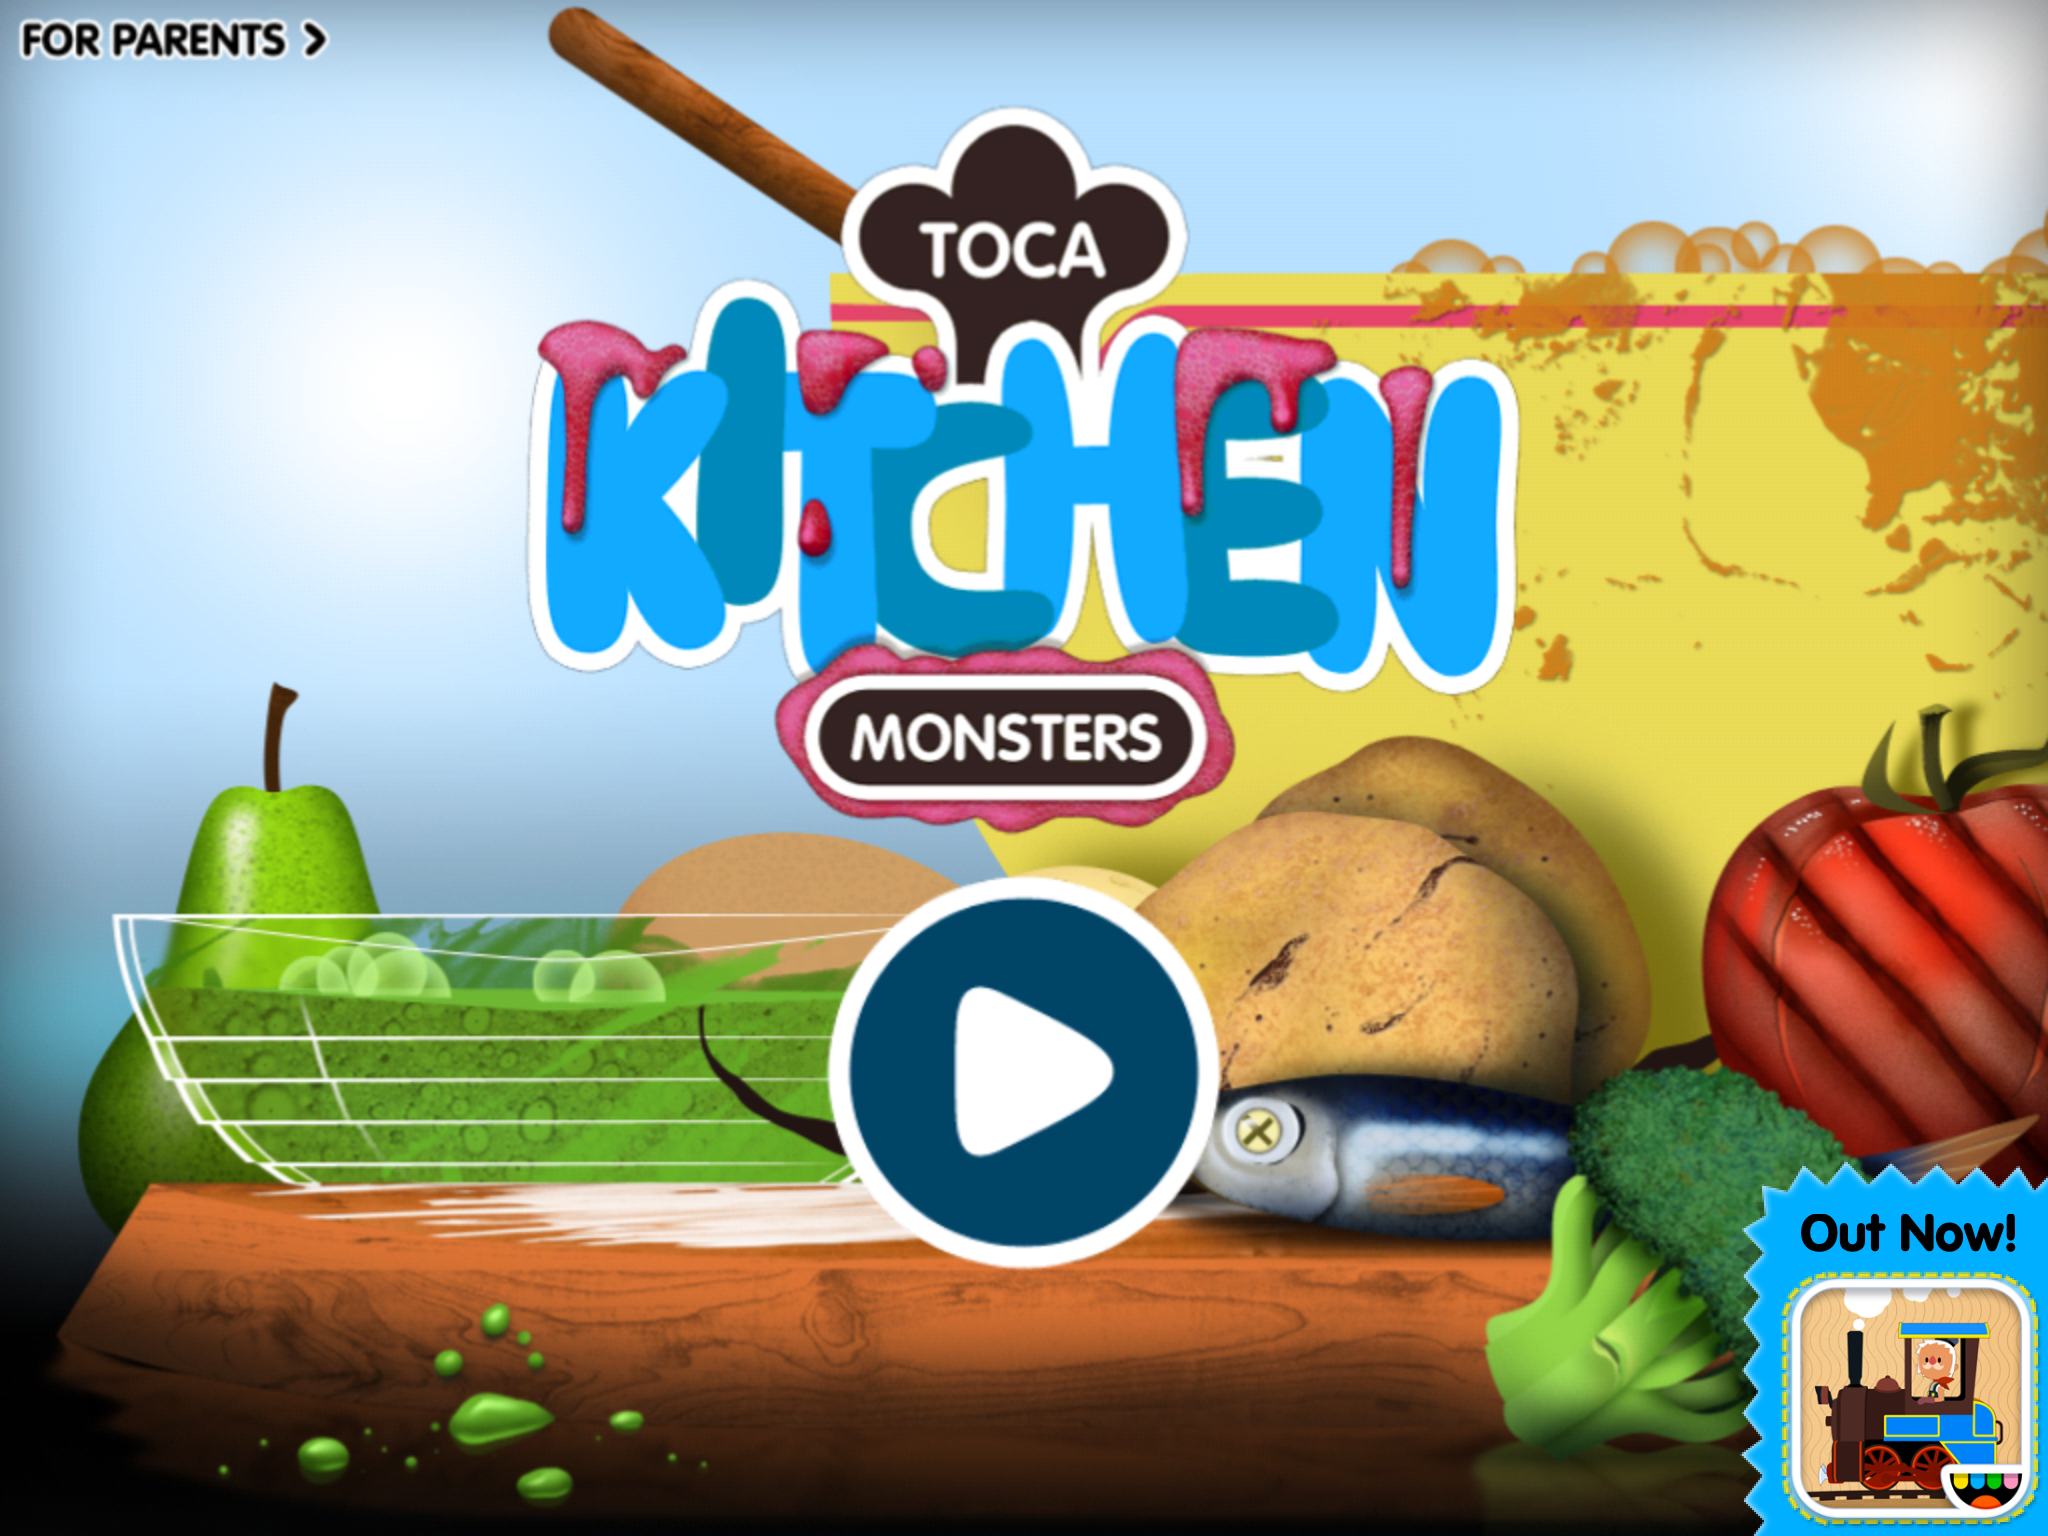 Toca Kitchen Monsters By Toca Boca Allows Your Children To Actually Play With Their Food They Can Slice Boil Fry Cook M Kids App Pops Cereal Box Monster